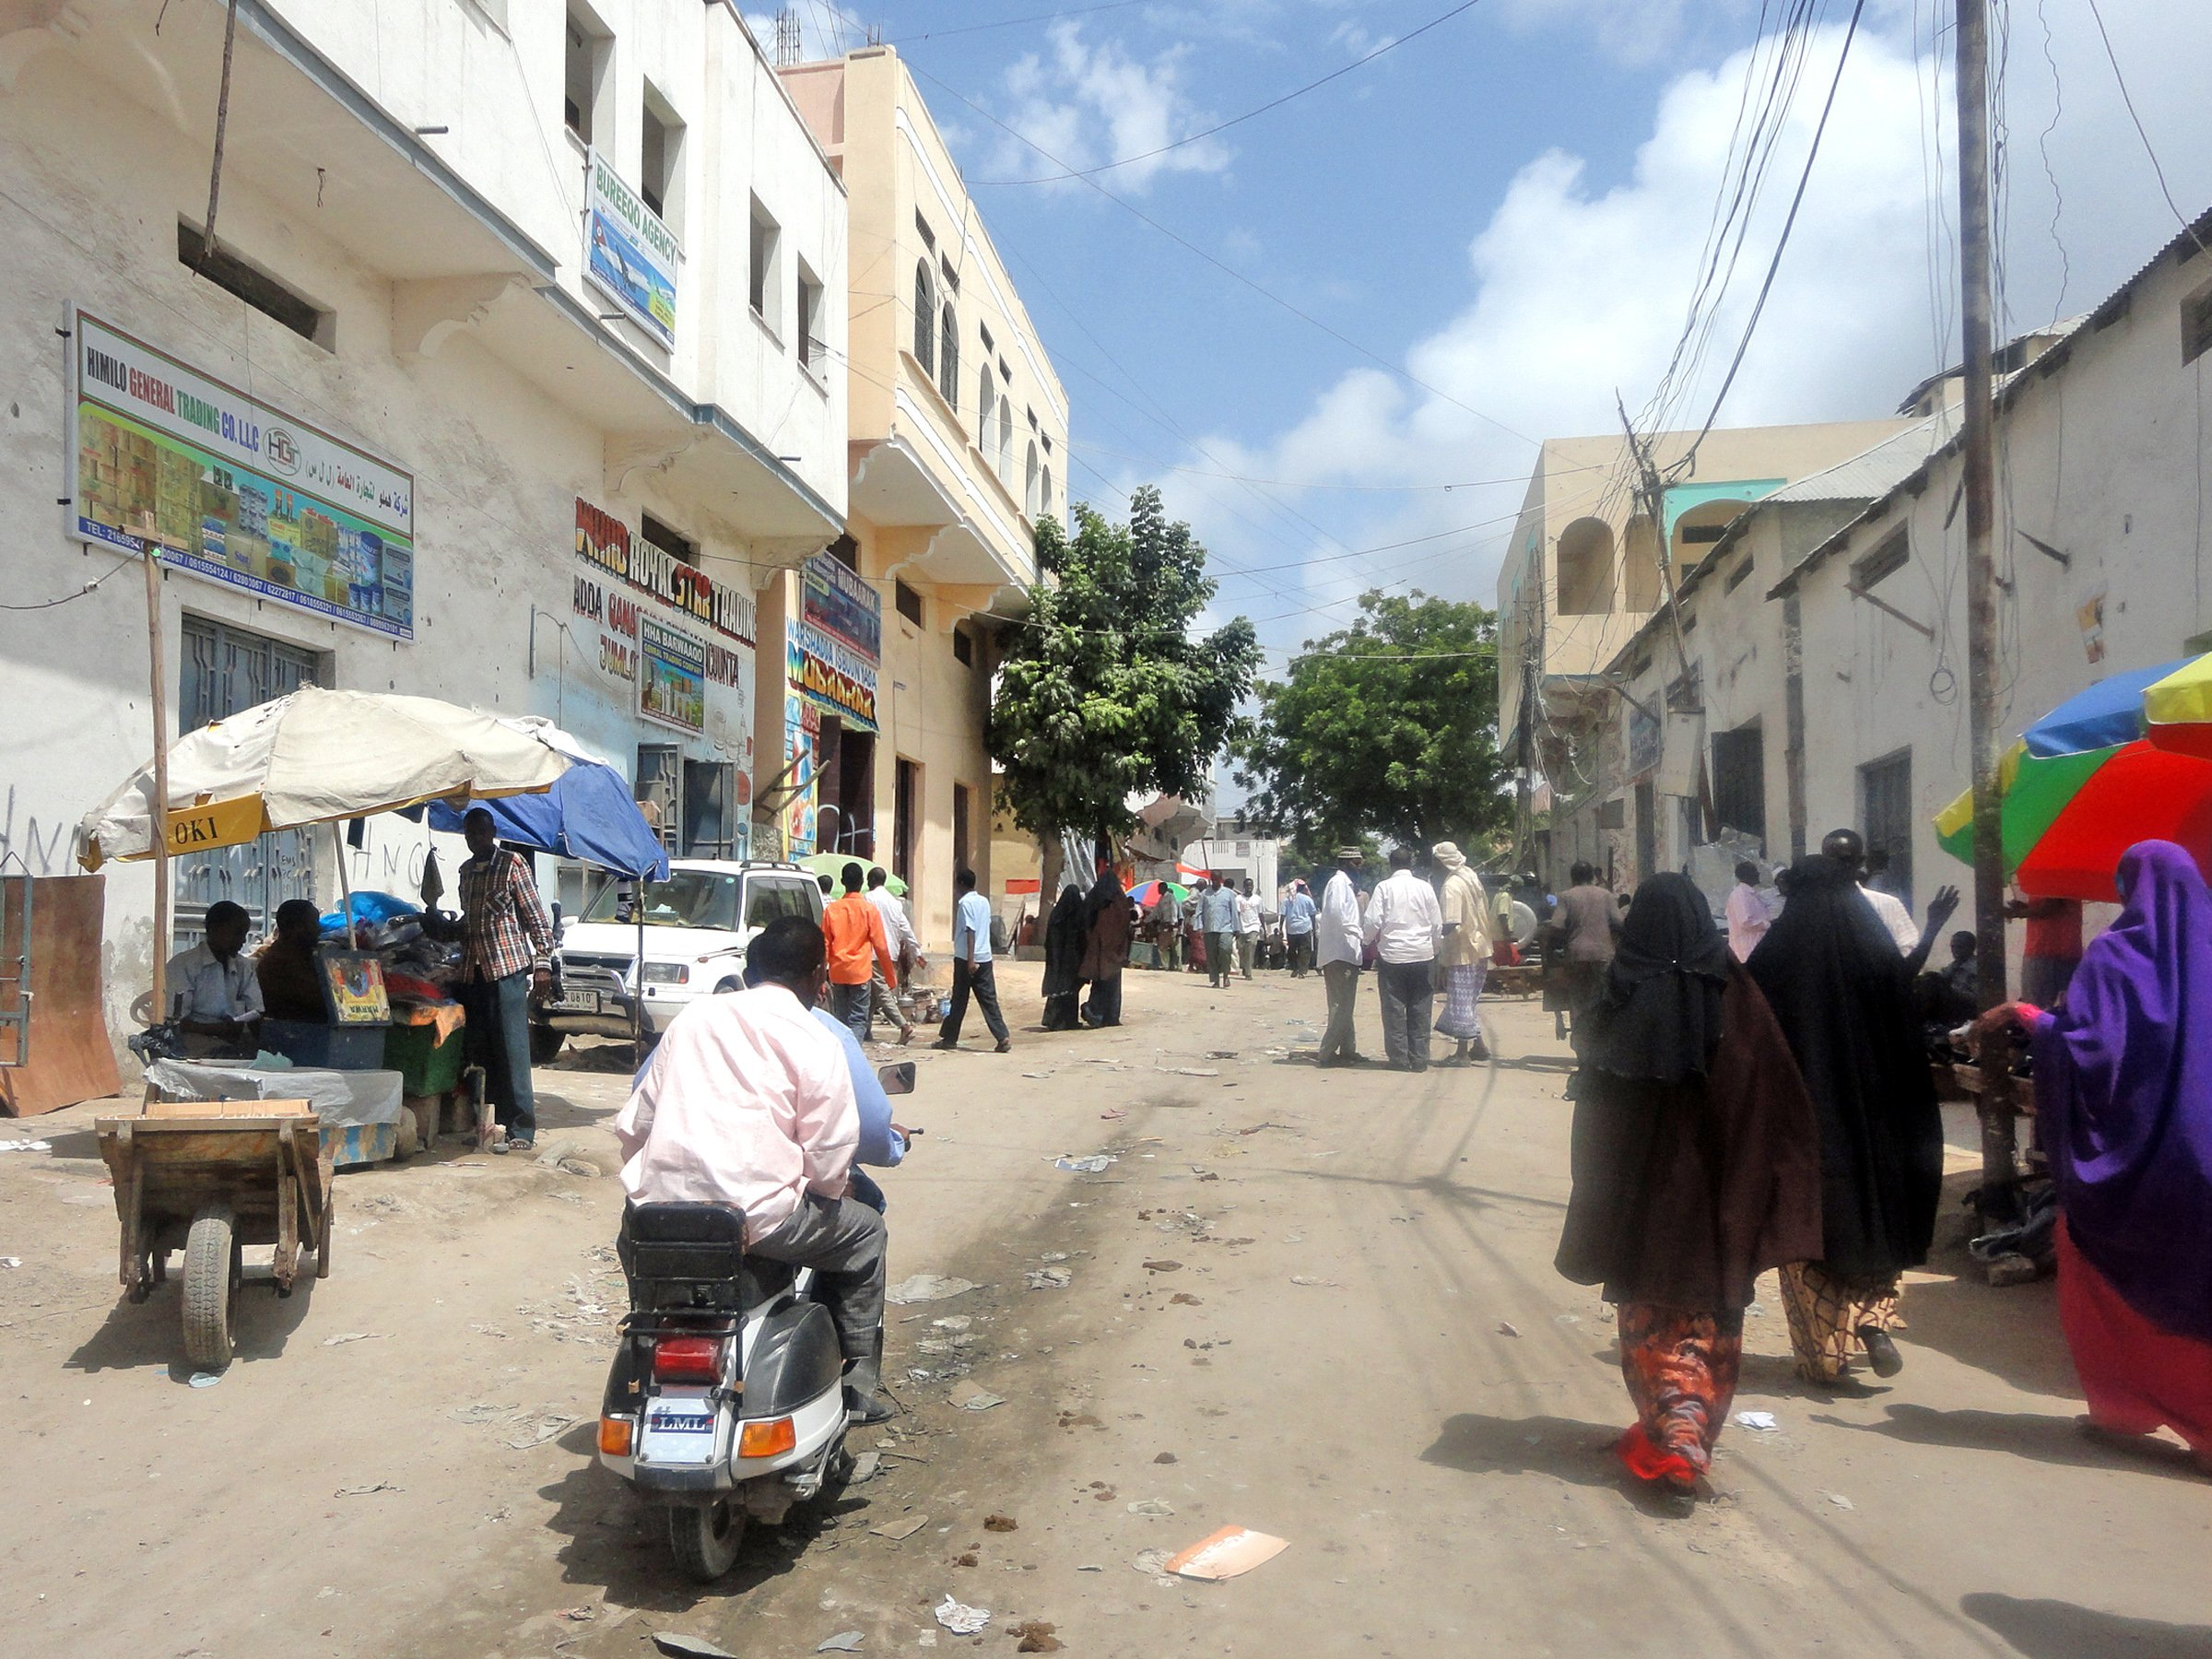 The Southern entrance of Bakara Market in Mogadishu